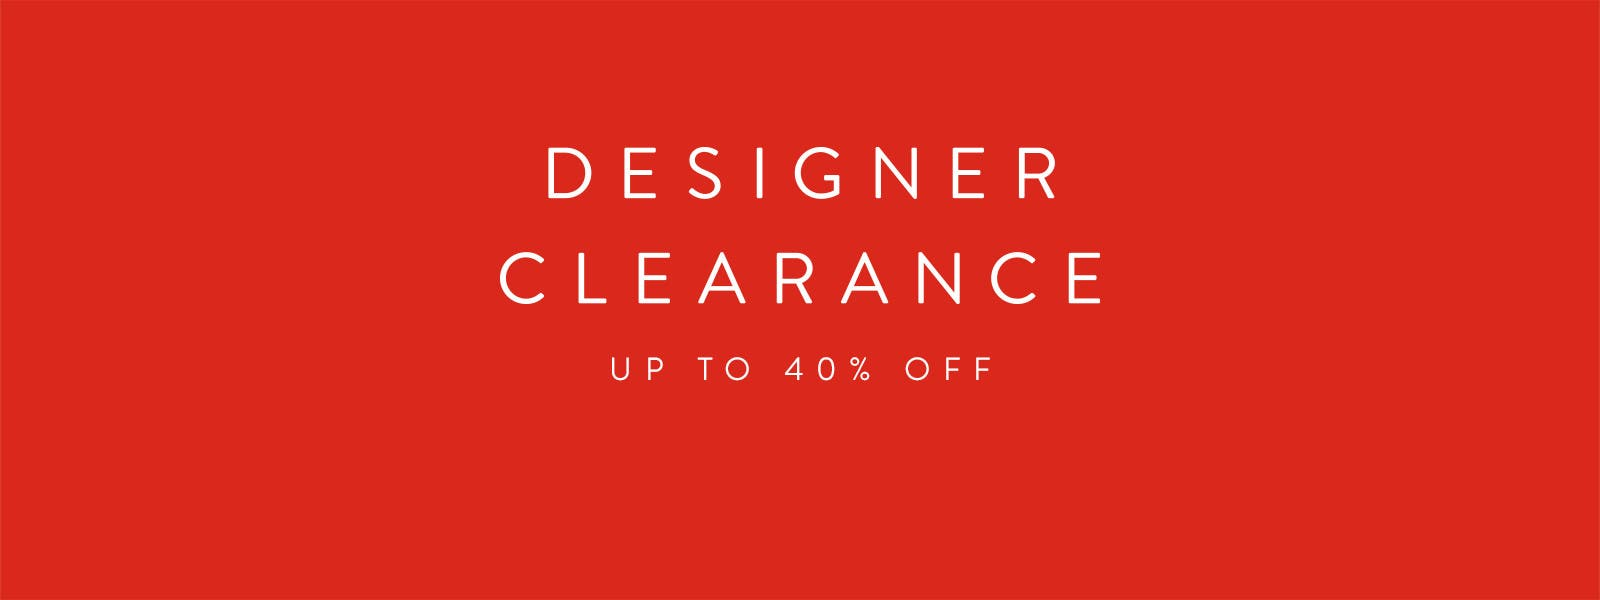 Designer Clearance Sale. Up to 40% off women's designer clothing.